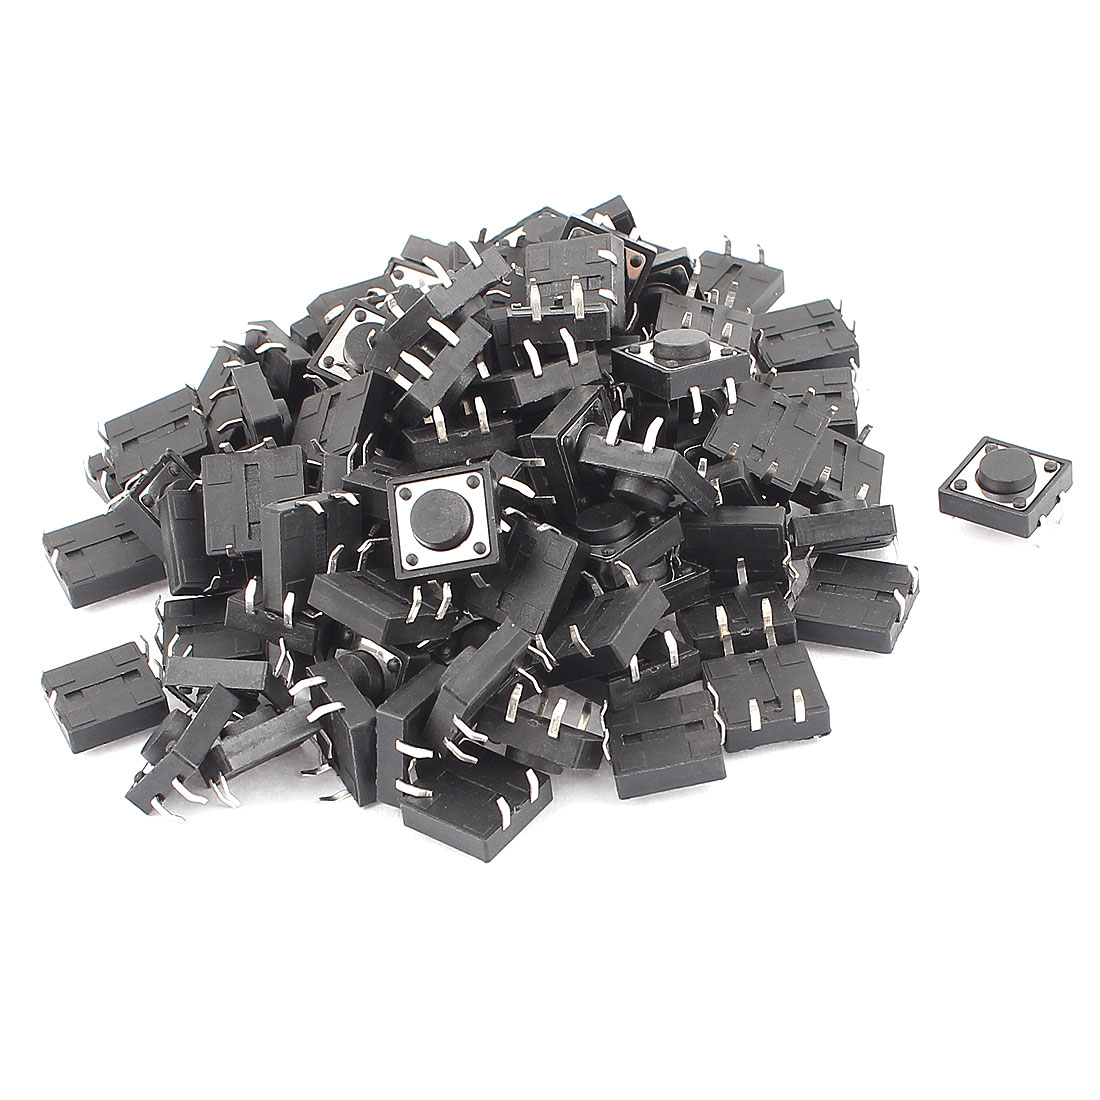 12mm x 12mm x 5mm 4 Terminal Momentary Tactile Tact Push Button Switch 100Pcs